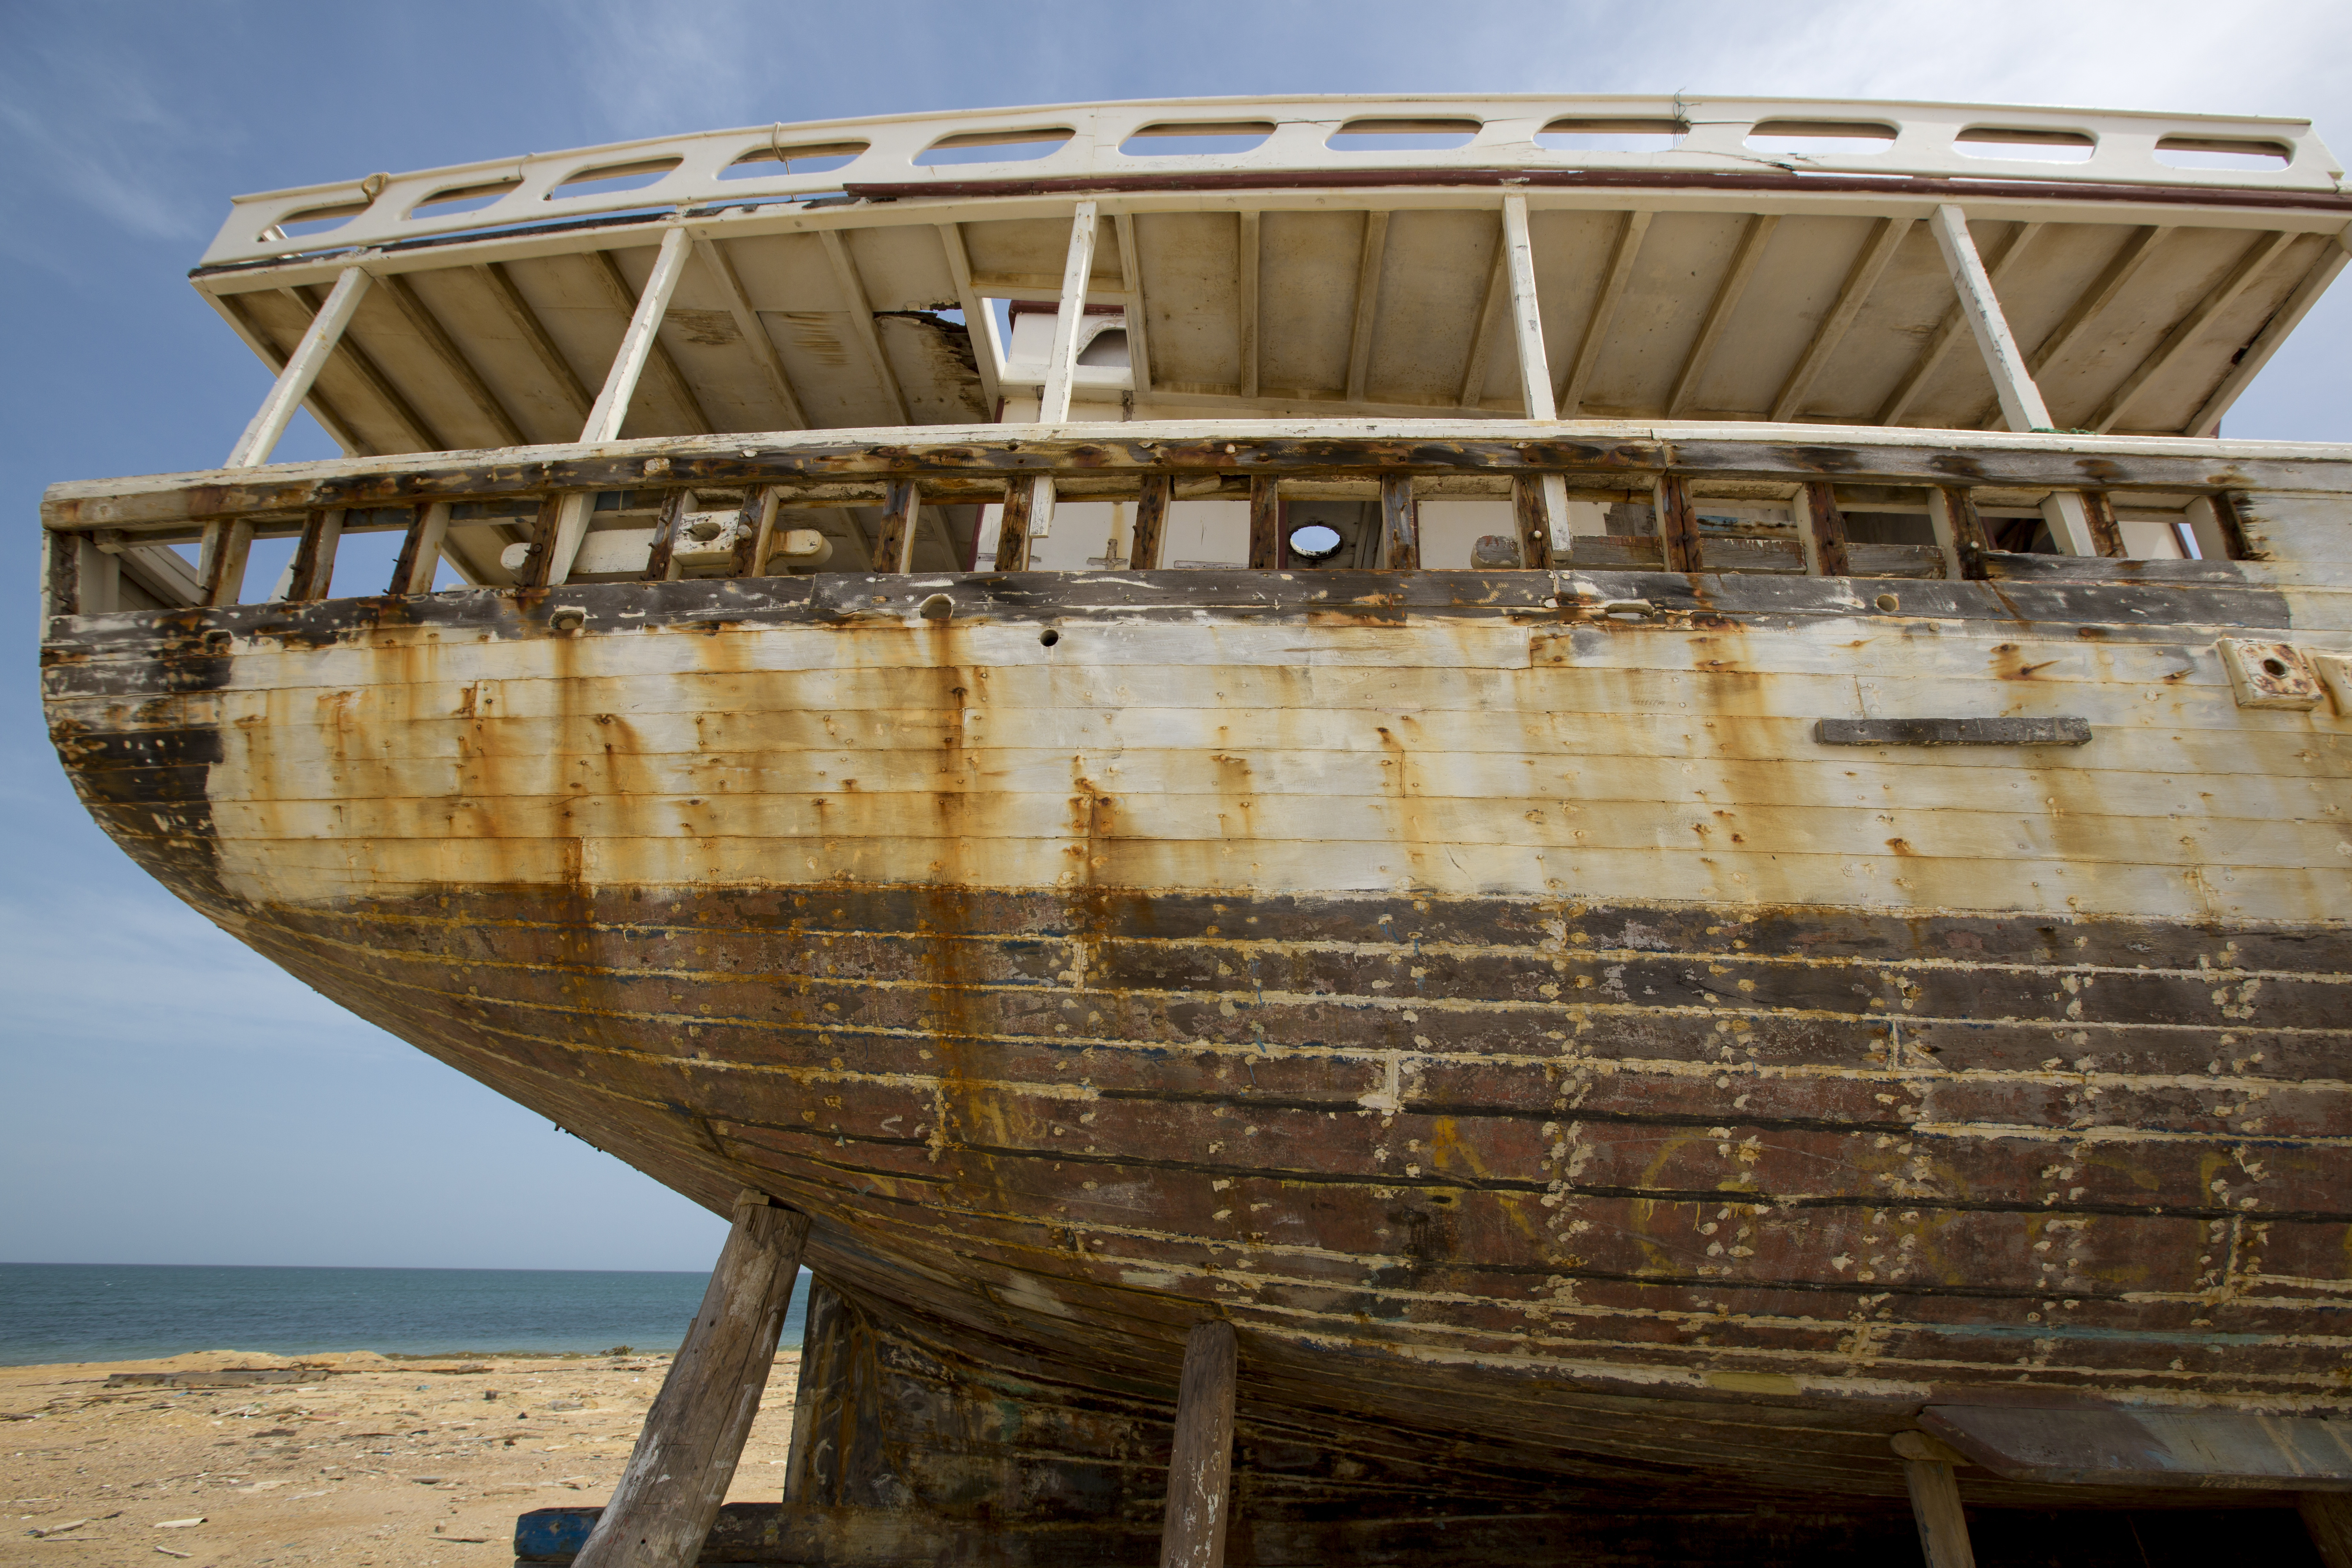 Shipwreck standing on the beach with the sea in the background. Margarita Island. Venezuela. Photo courtesy of DollarPhotoClub.com